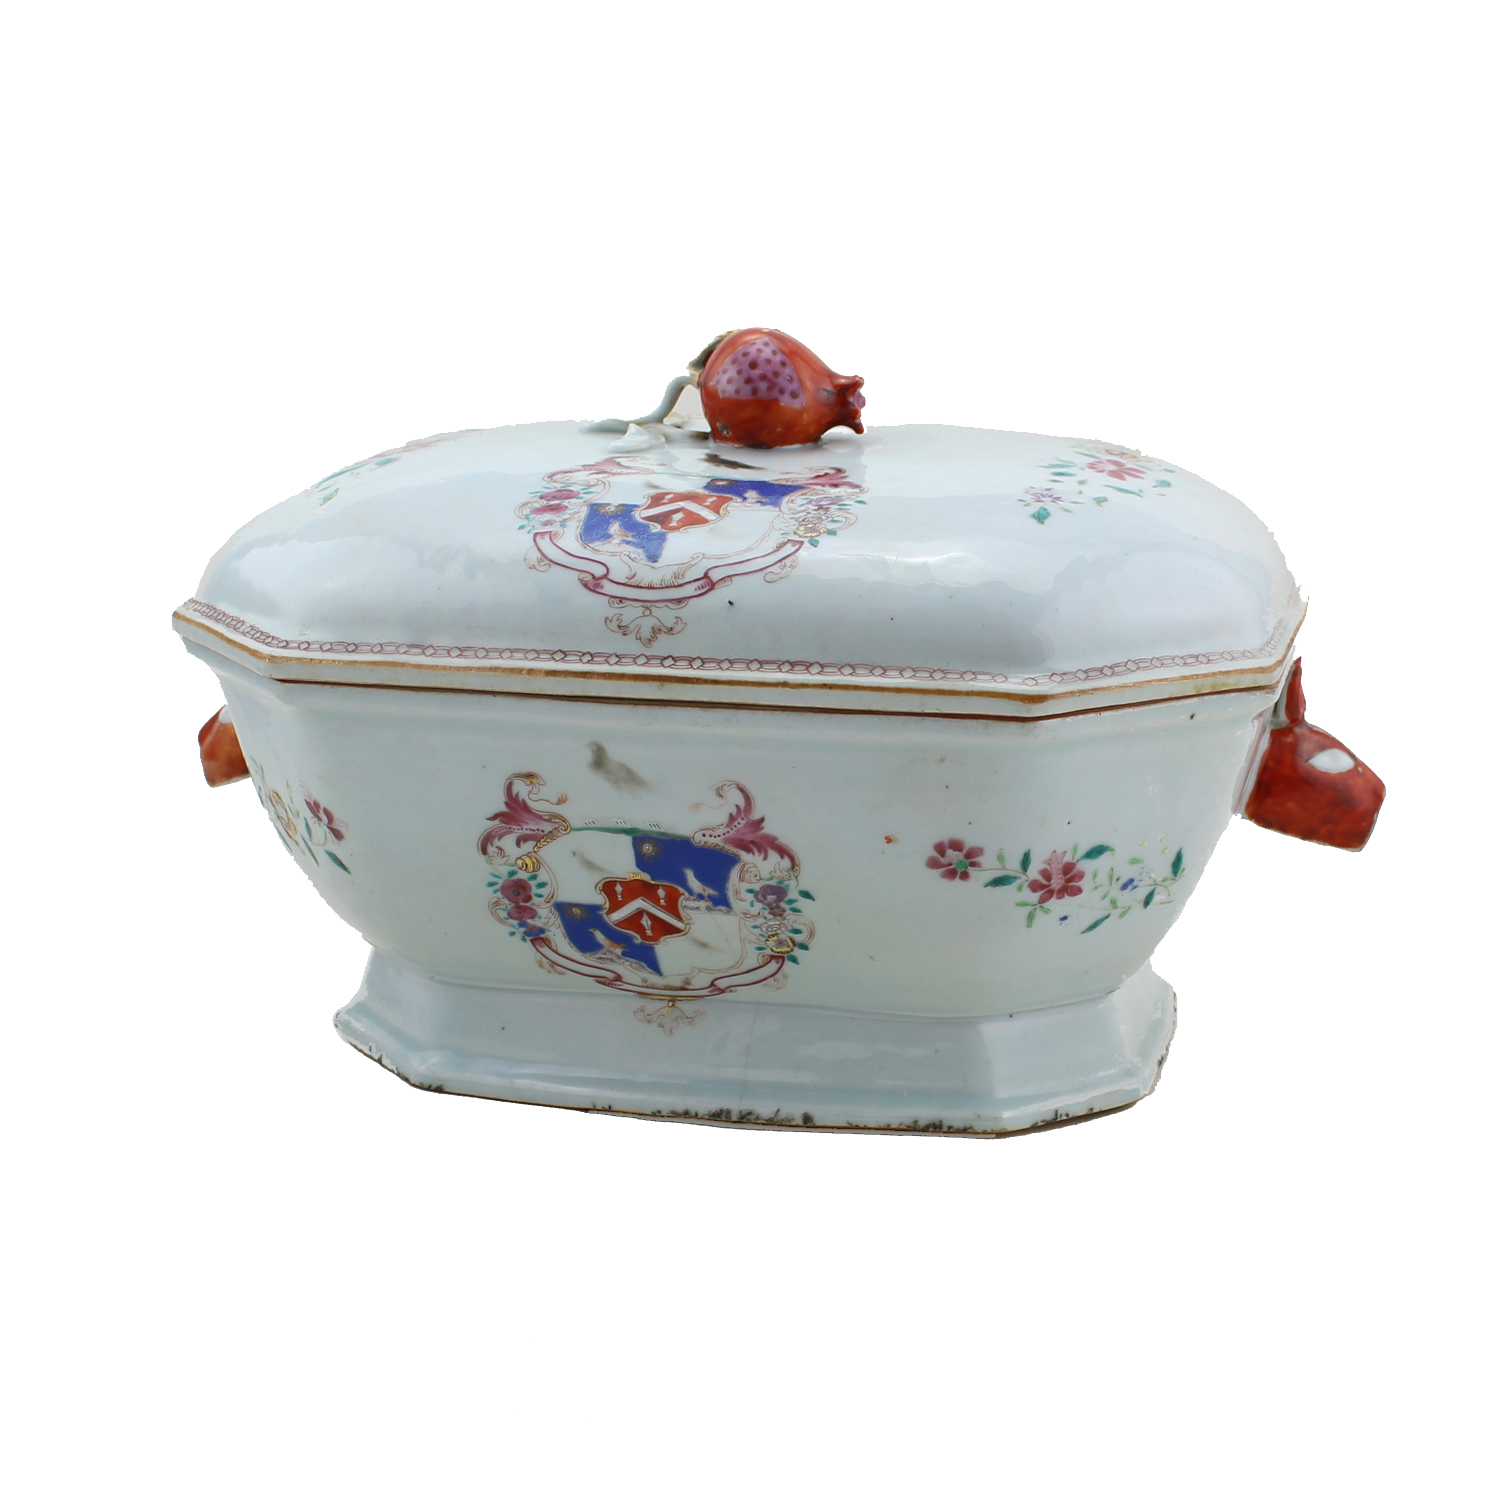 Chinese Export Armorial tureen with cover, 18th/19th century